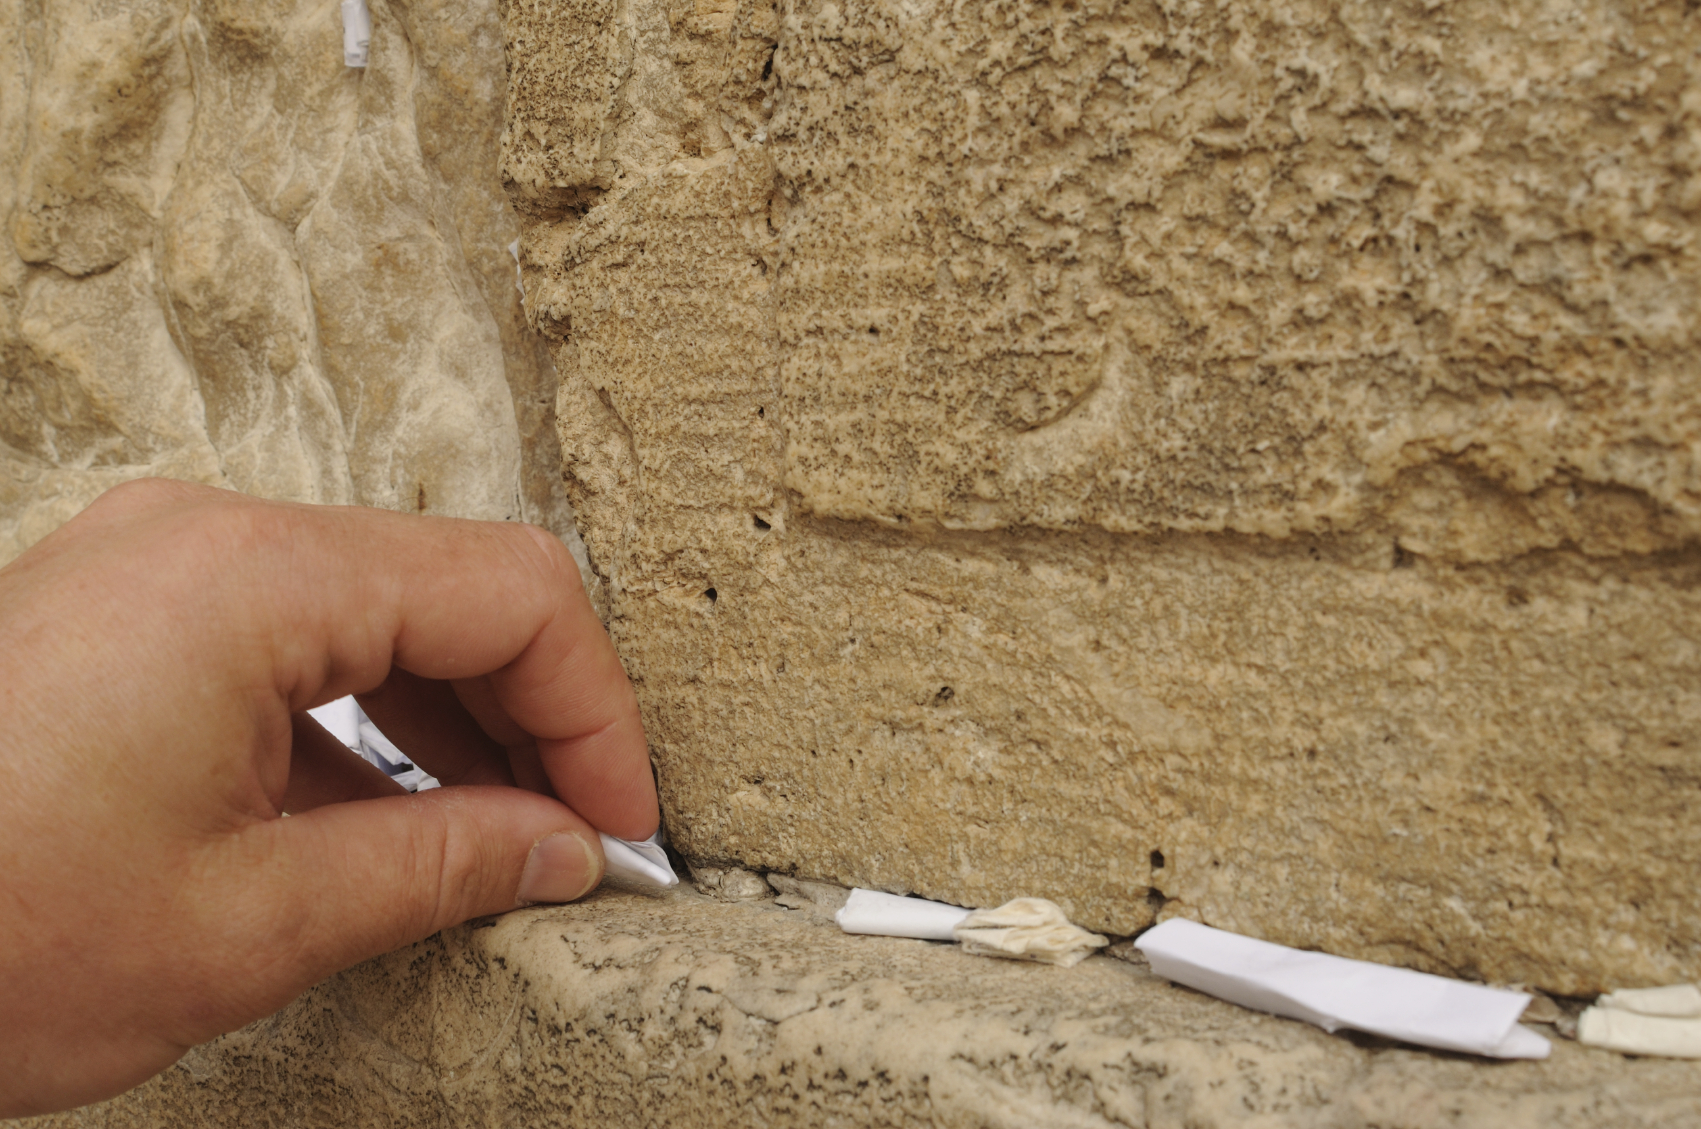 A paper petition into the Western Wall.